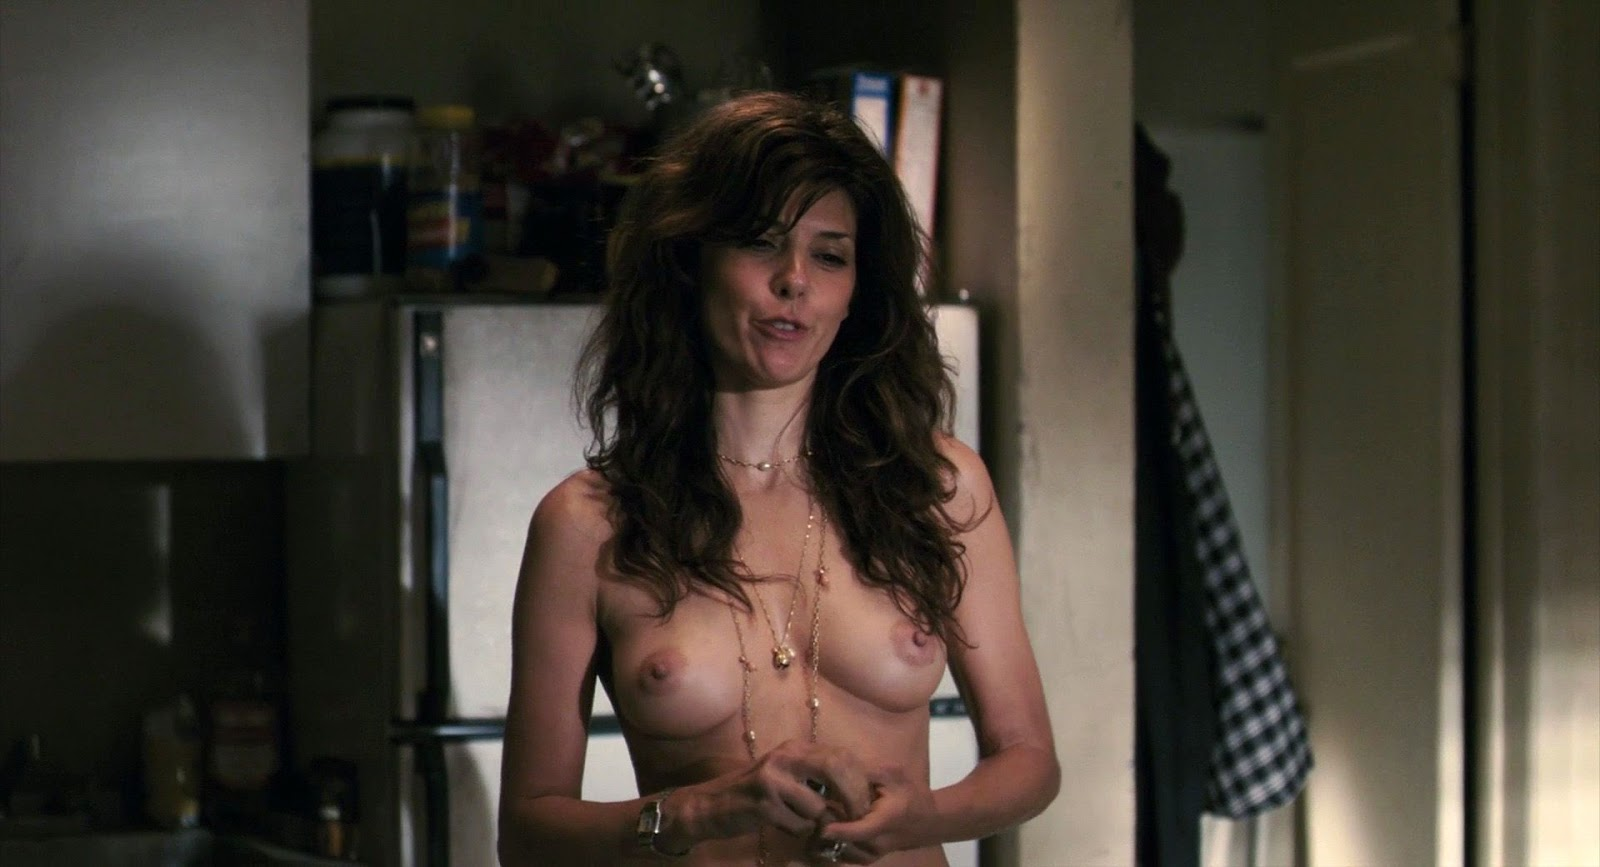 Marisa Tomei Nua No Filme Before The Devil Knows Youre Dead